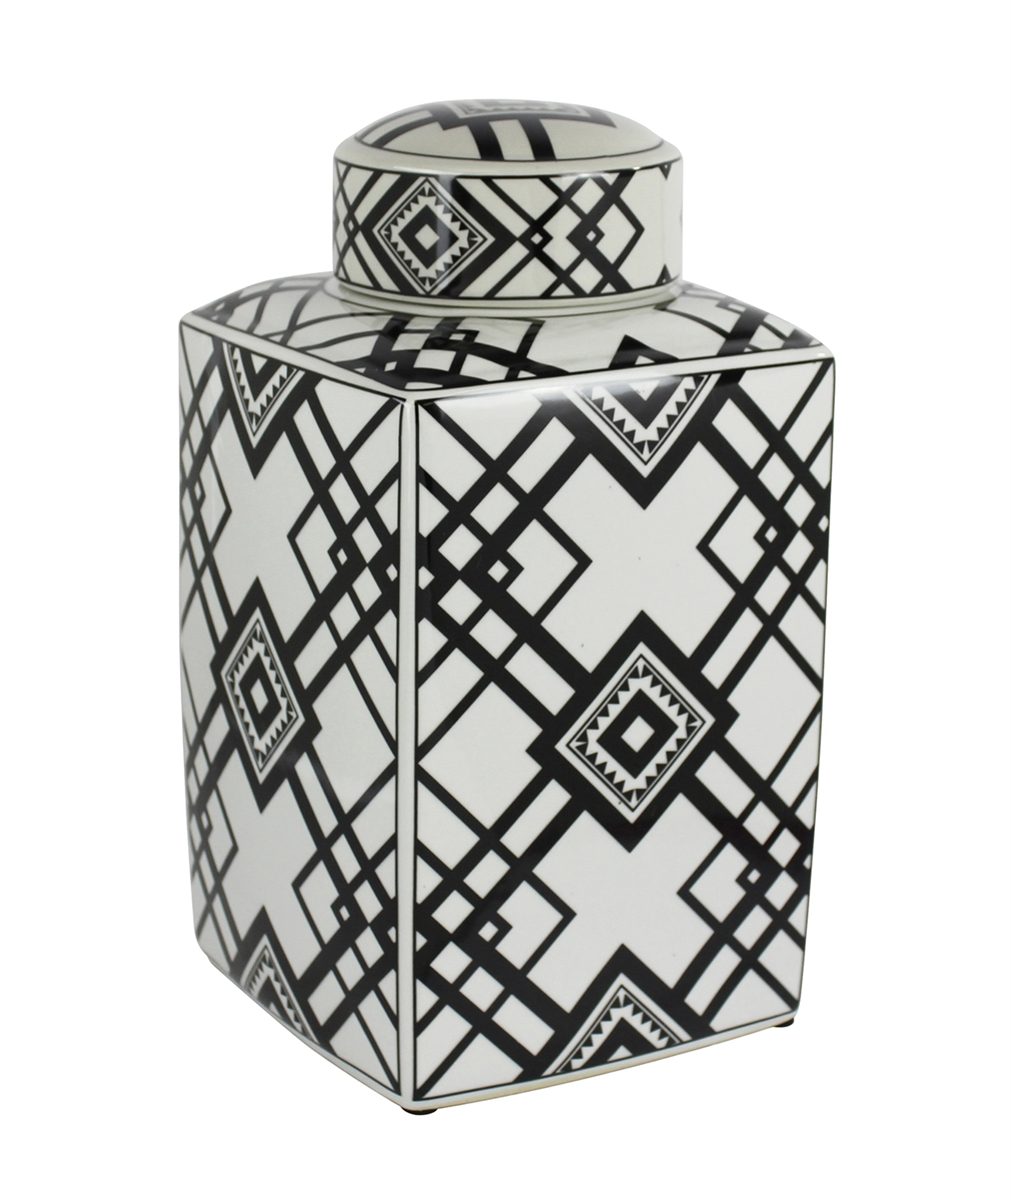 Black & White Castro Jar, Small